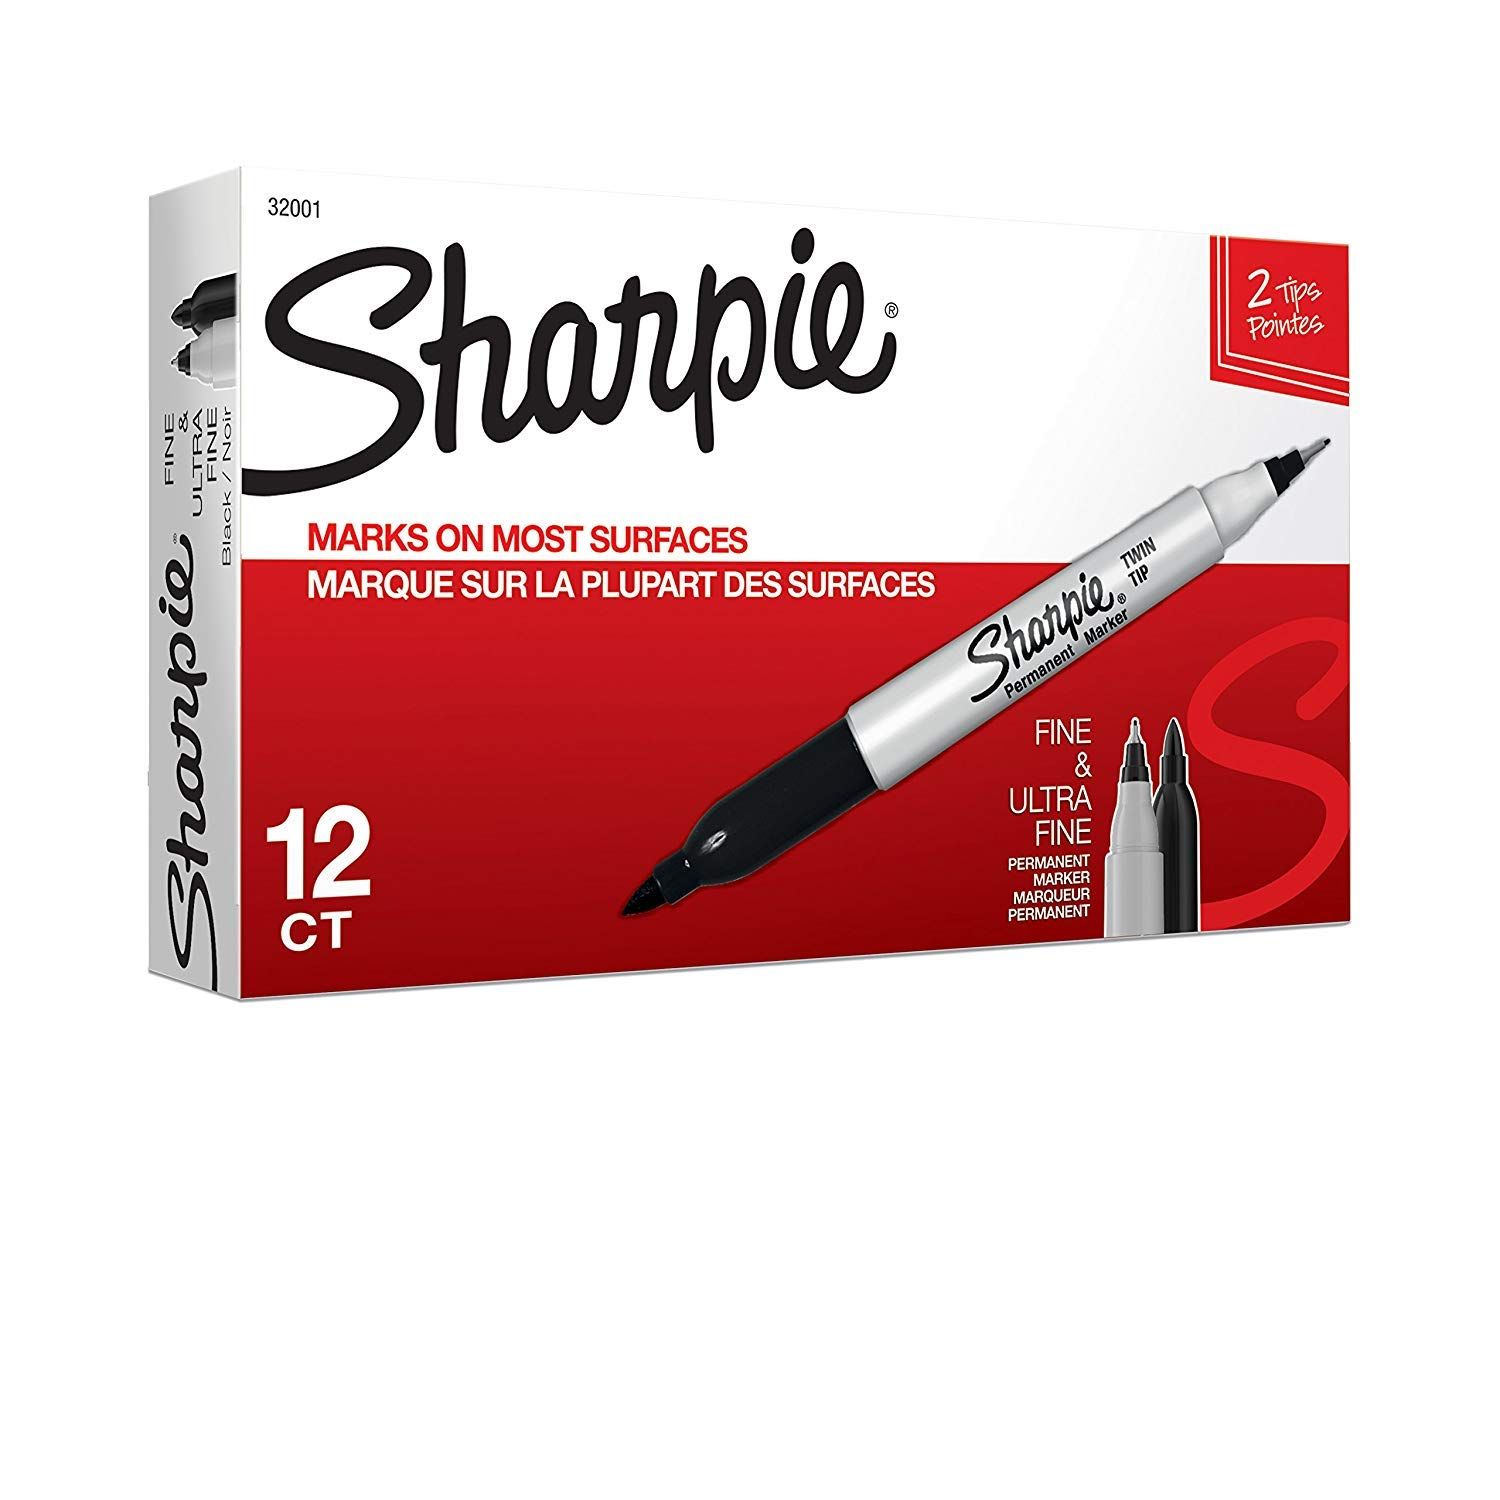 Sharpie Twin Tip Fine Point and Ultra Fine Point Permanent Markers, Black, 24 Markers